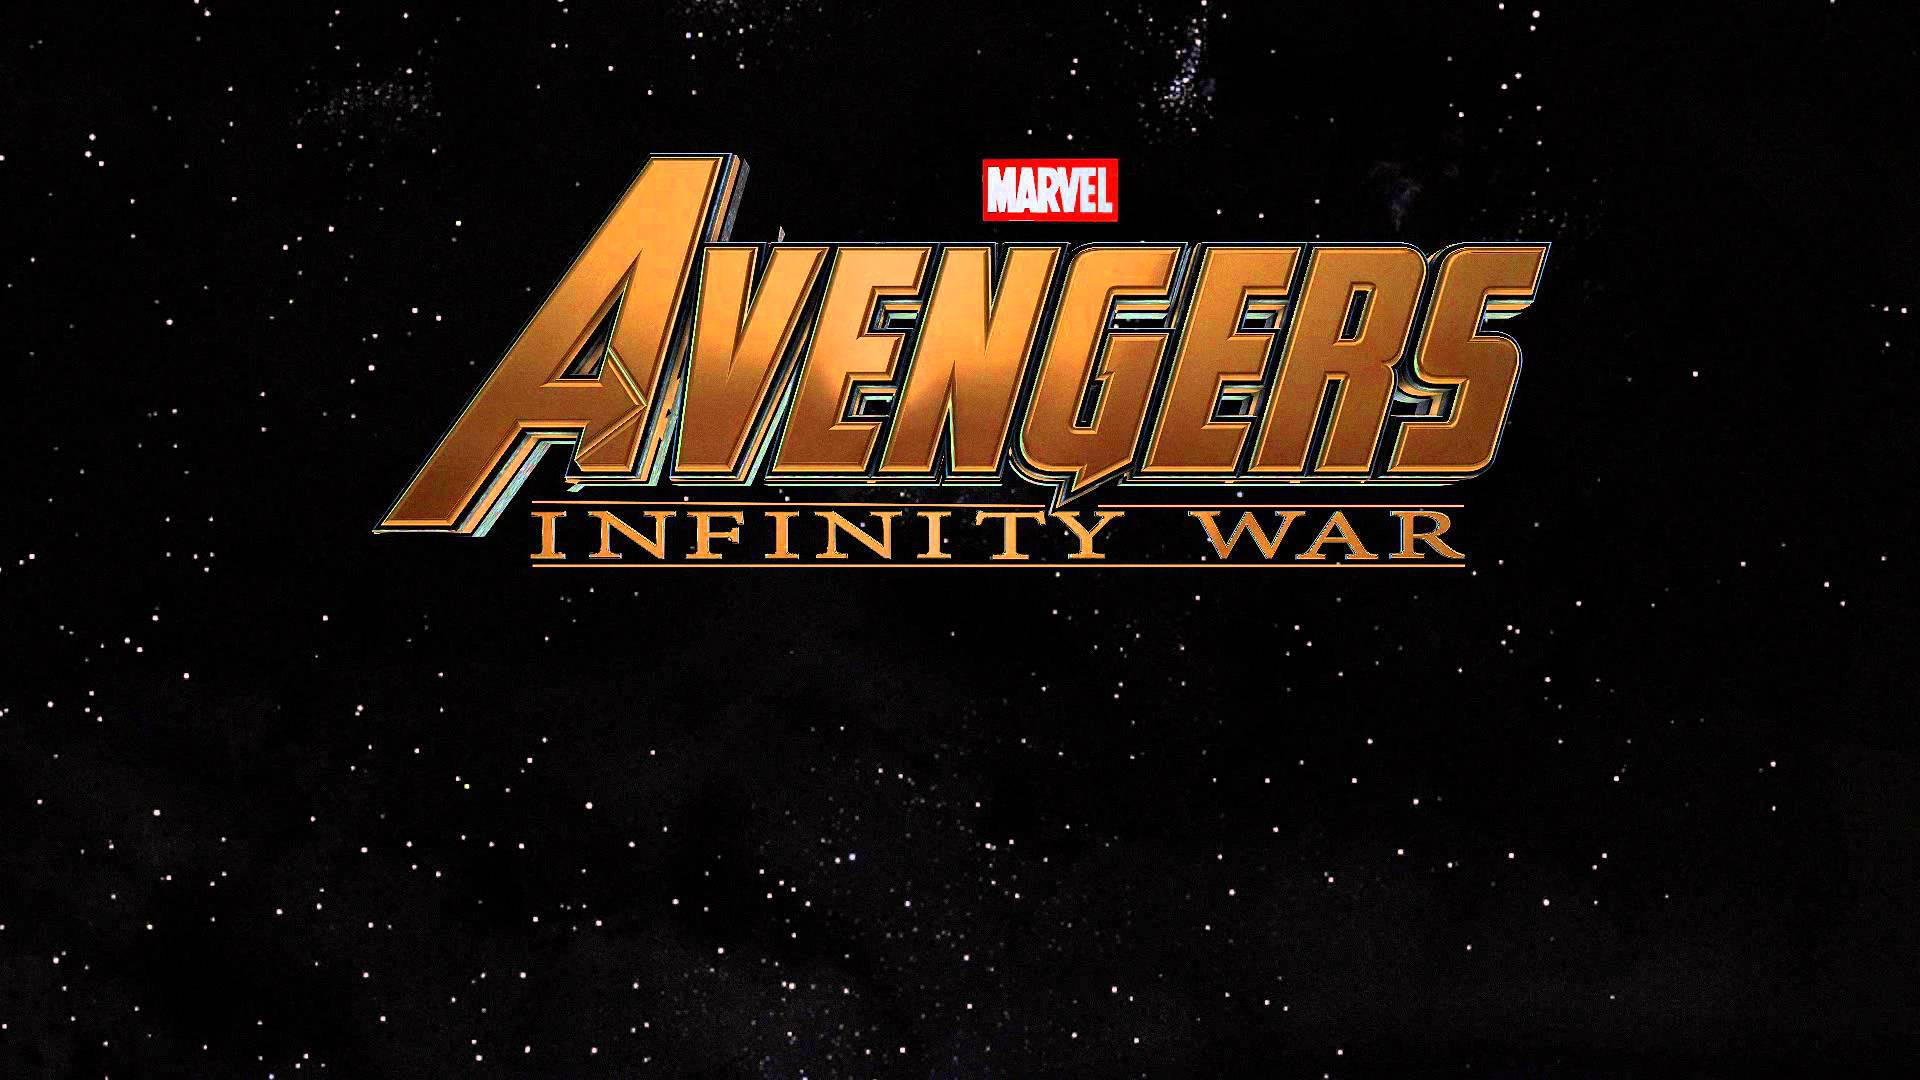 Avengers: Infinity War – Part II